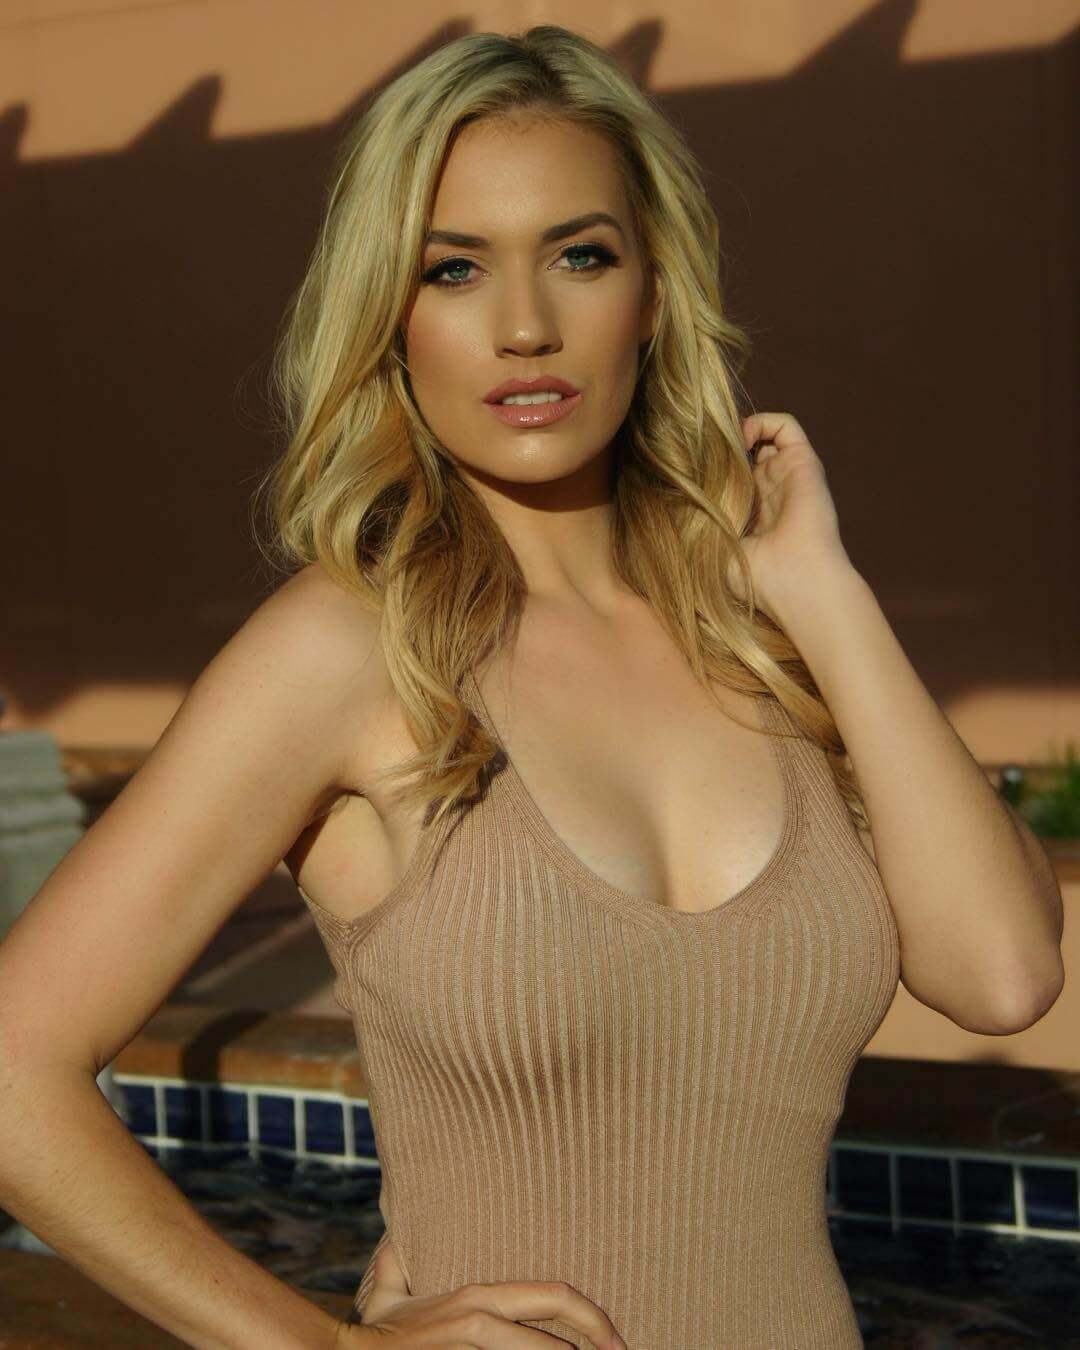 paige spiranac sexy busty picture